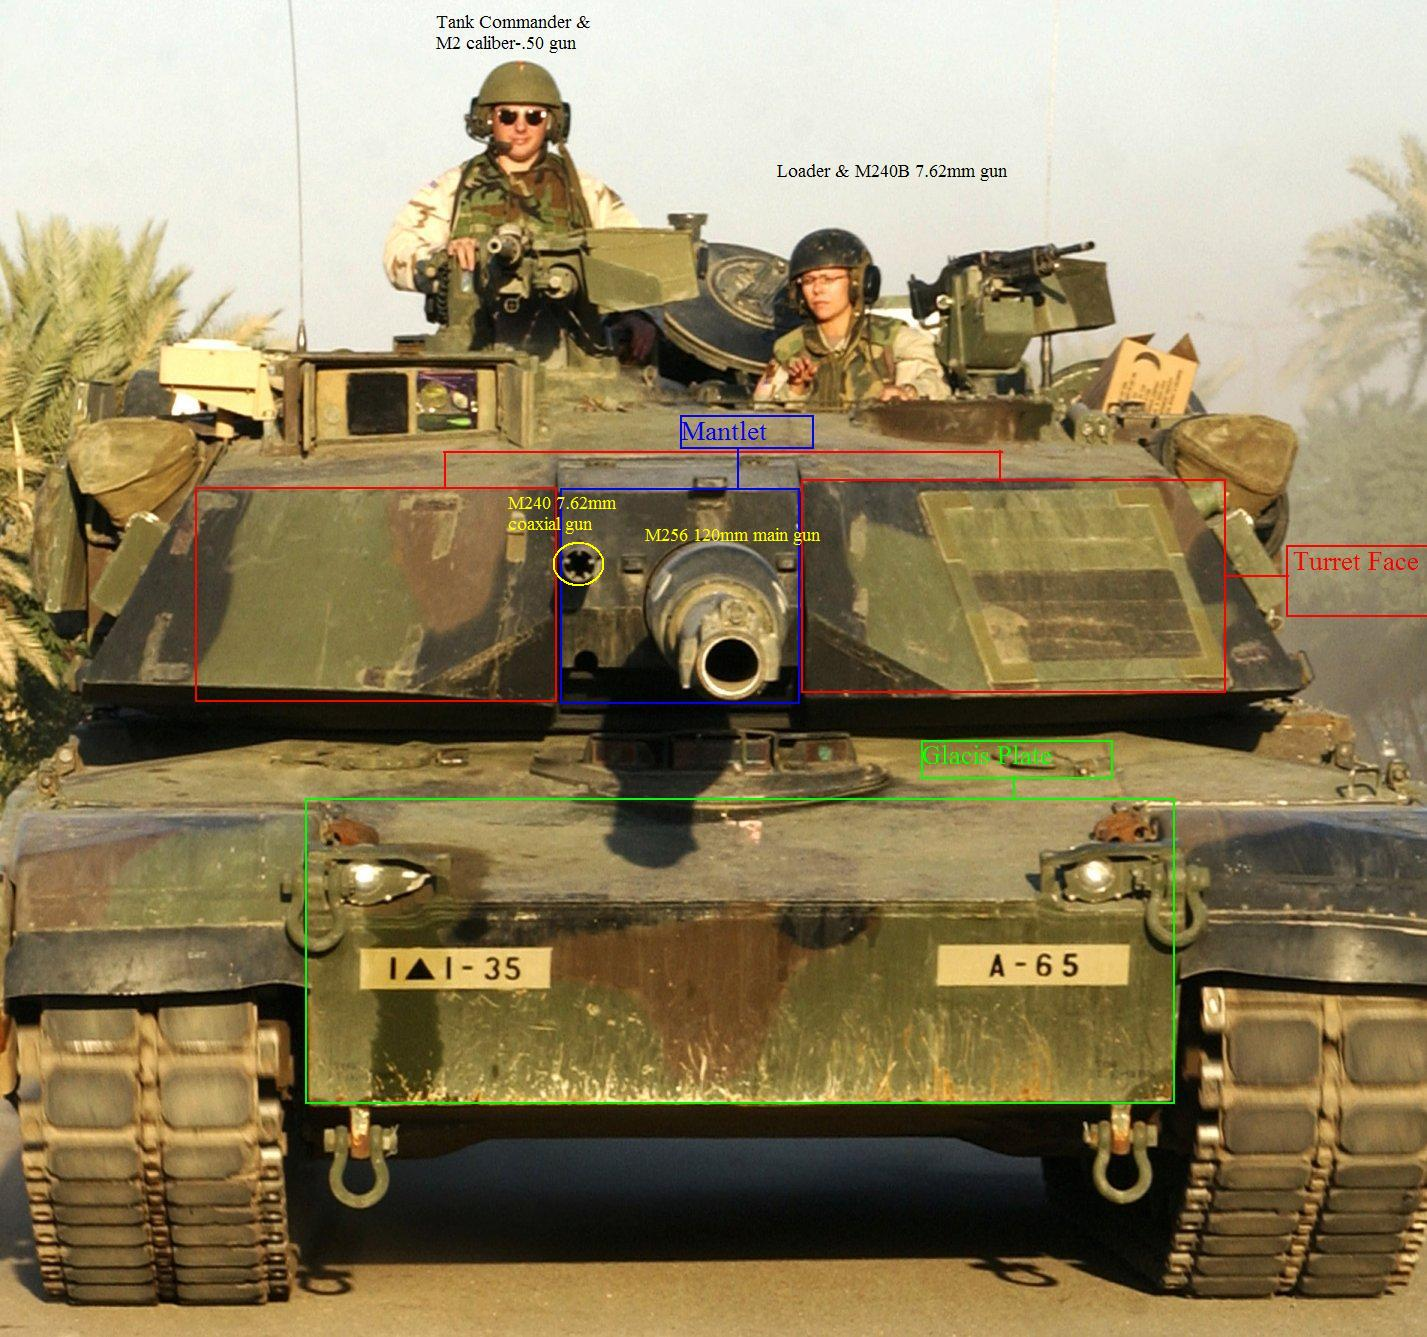 [Image: M1A1_Abrams_with_descriptions.JPG]